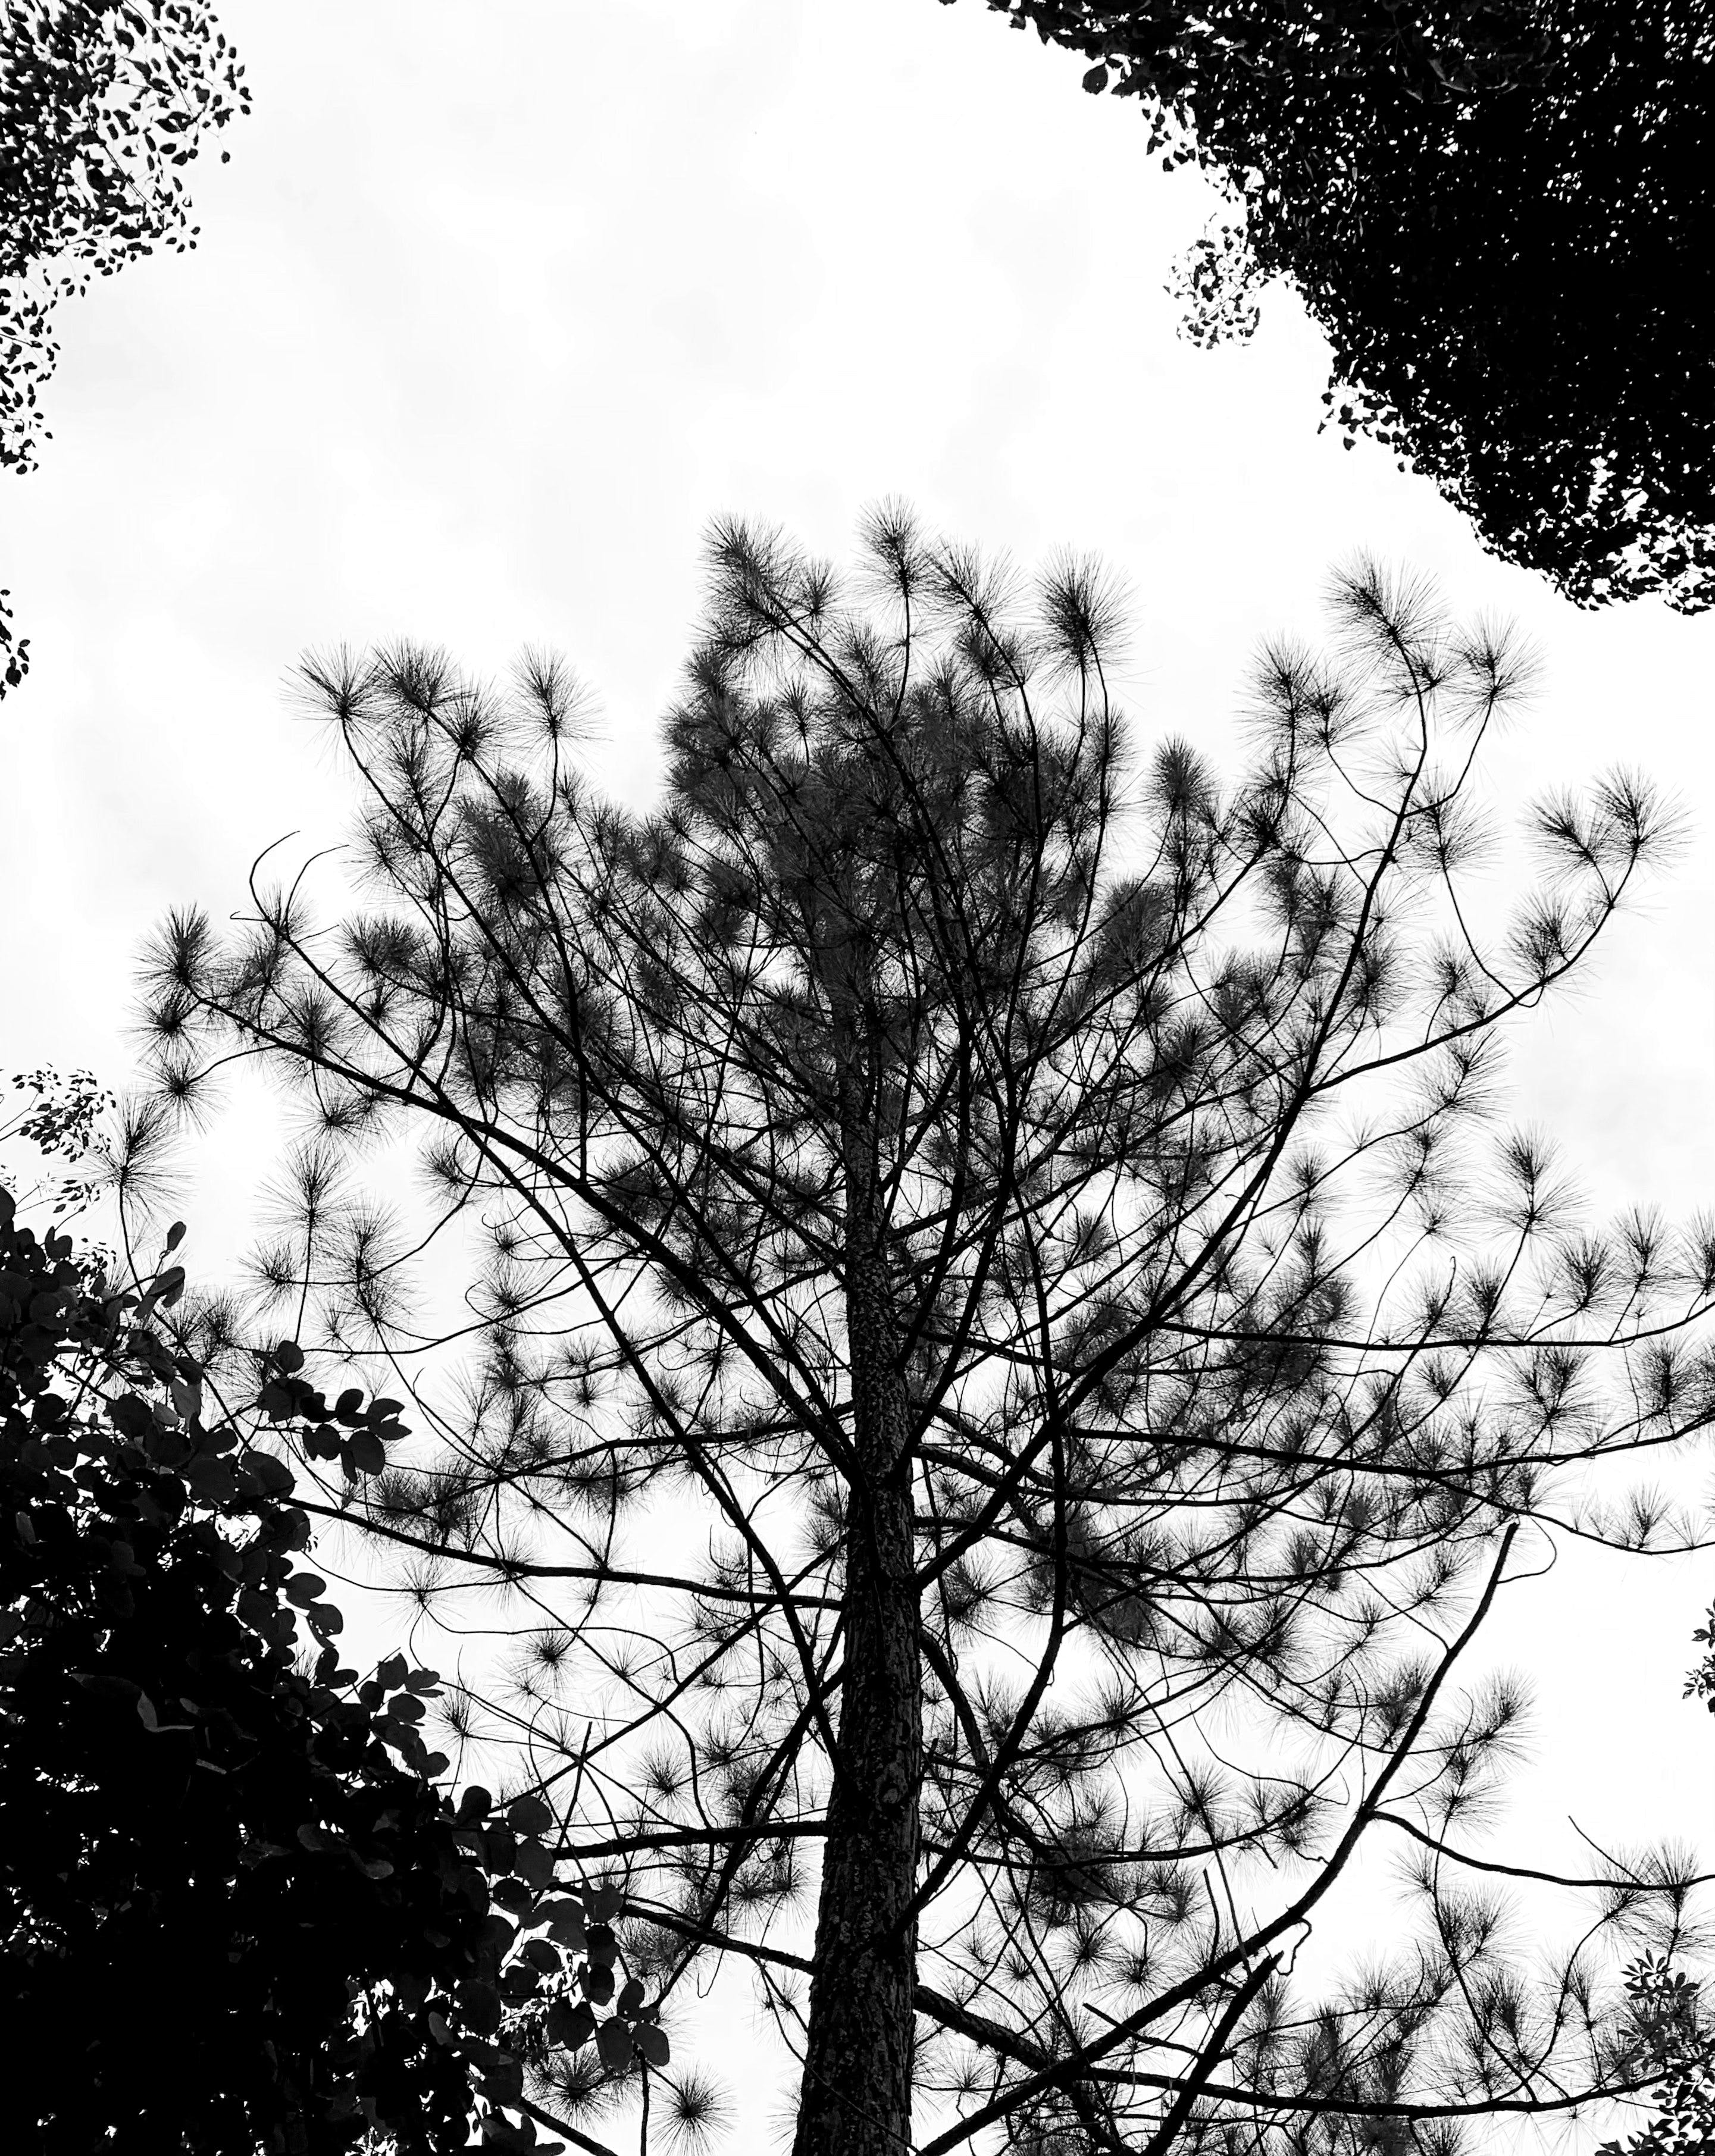 Monochrome Photo of Tree and Leaves